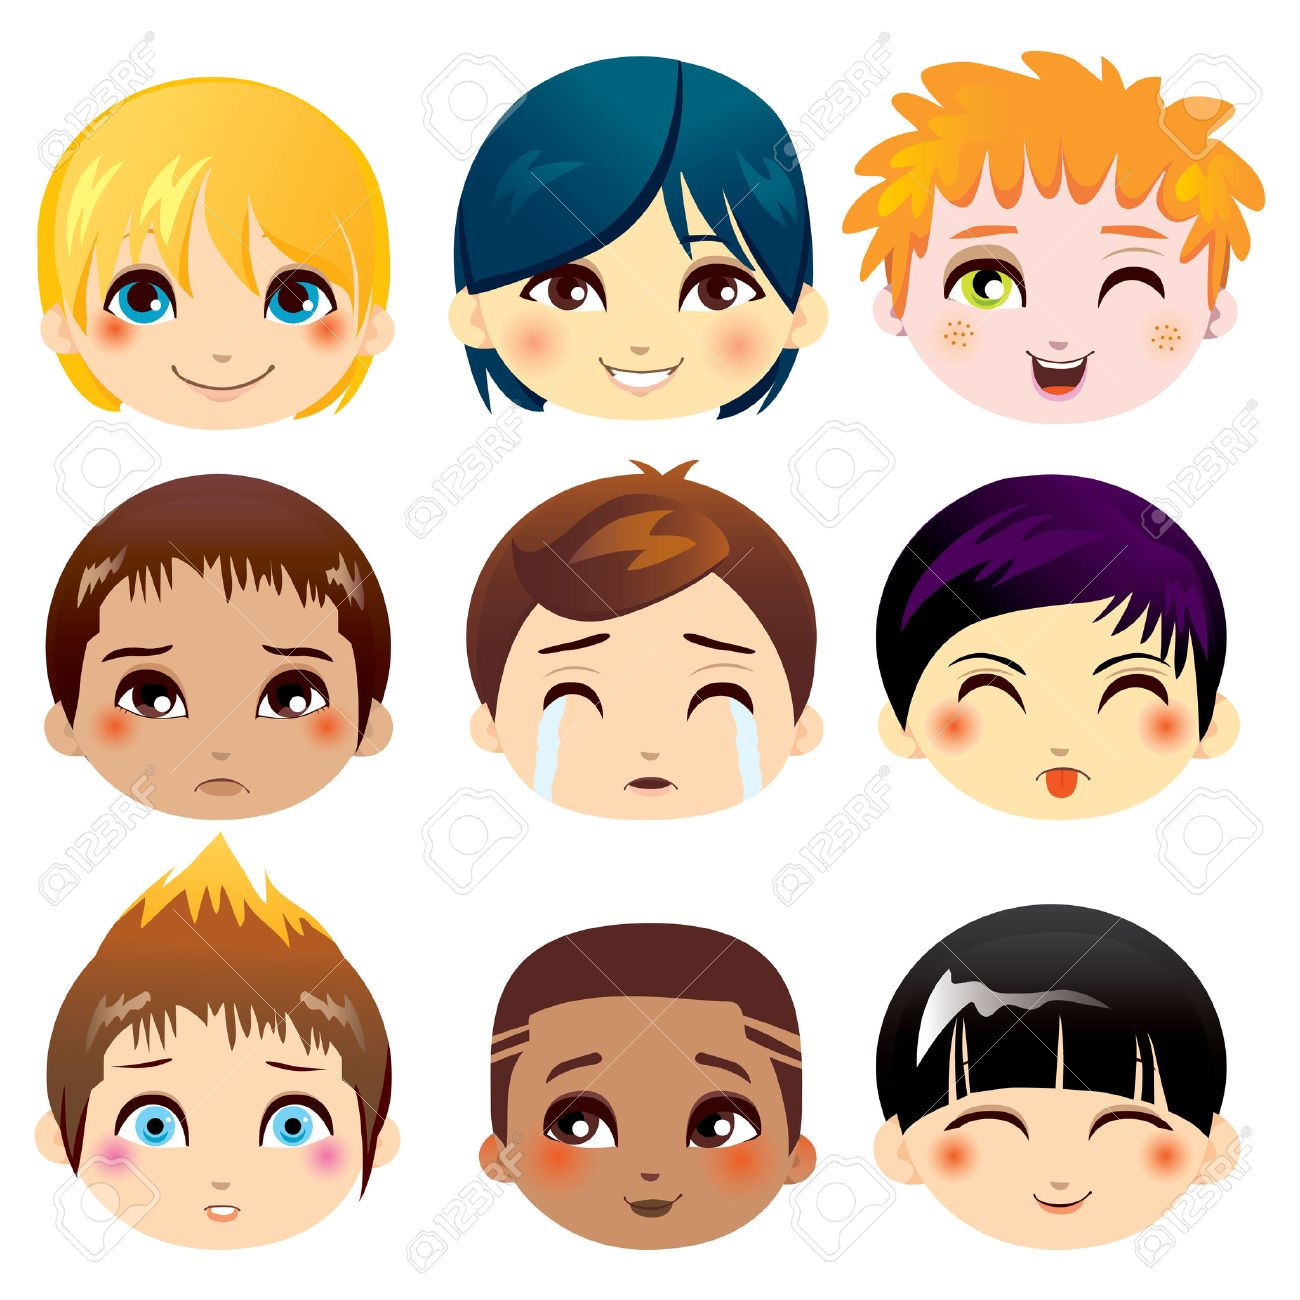 Set of nine facial expressions of little boys from various ethnic groups Stock Vector - 8977759